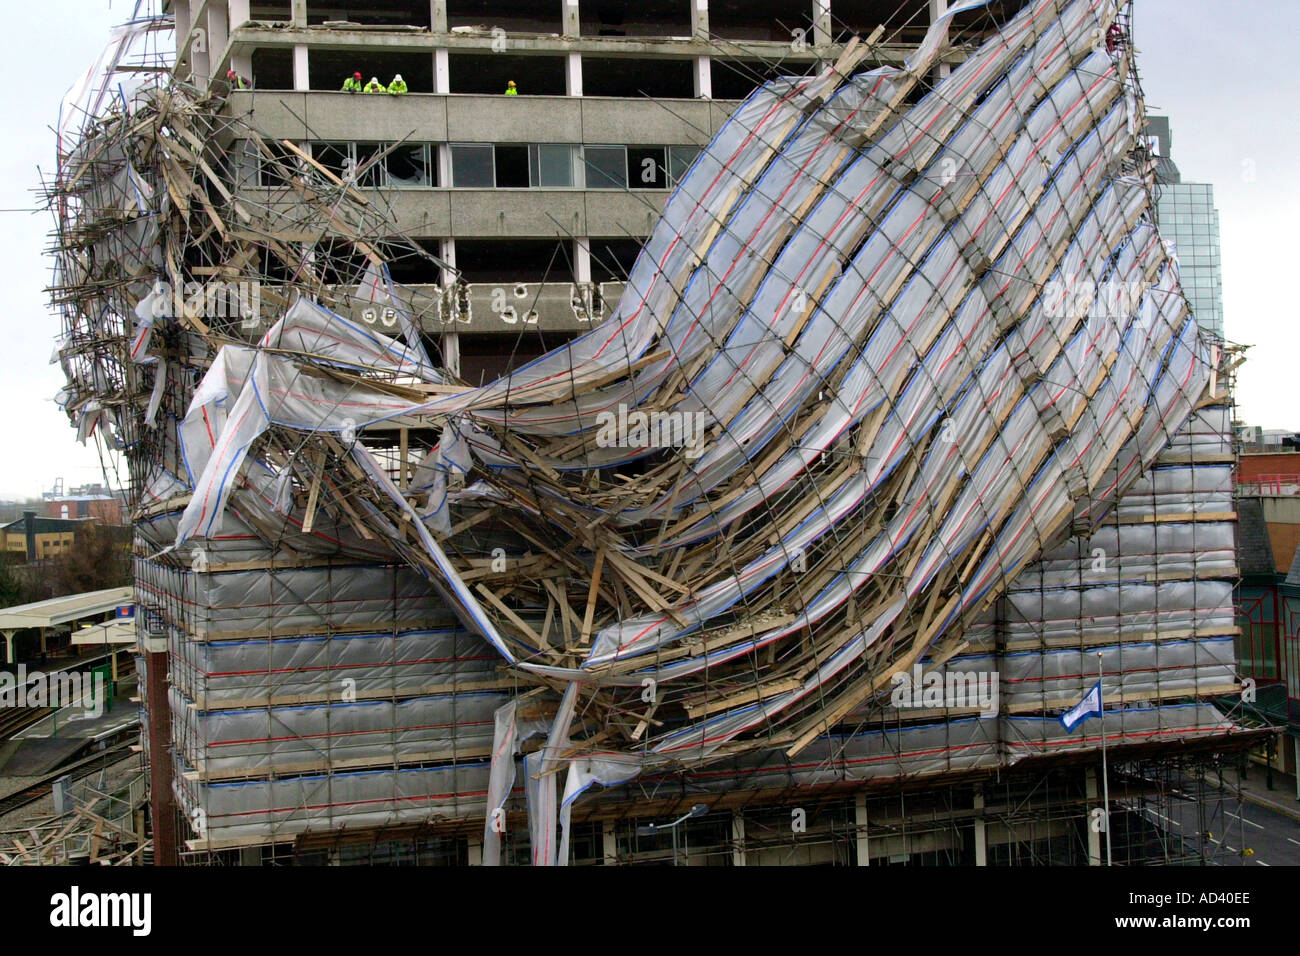 Aftermath Of High Winds In Cardiff Scaffolding Collapse On